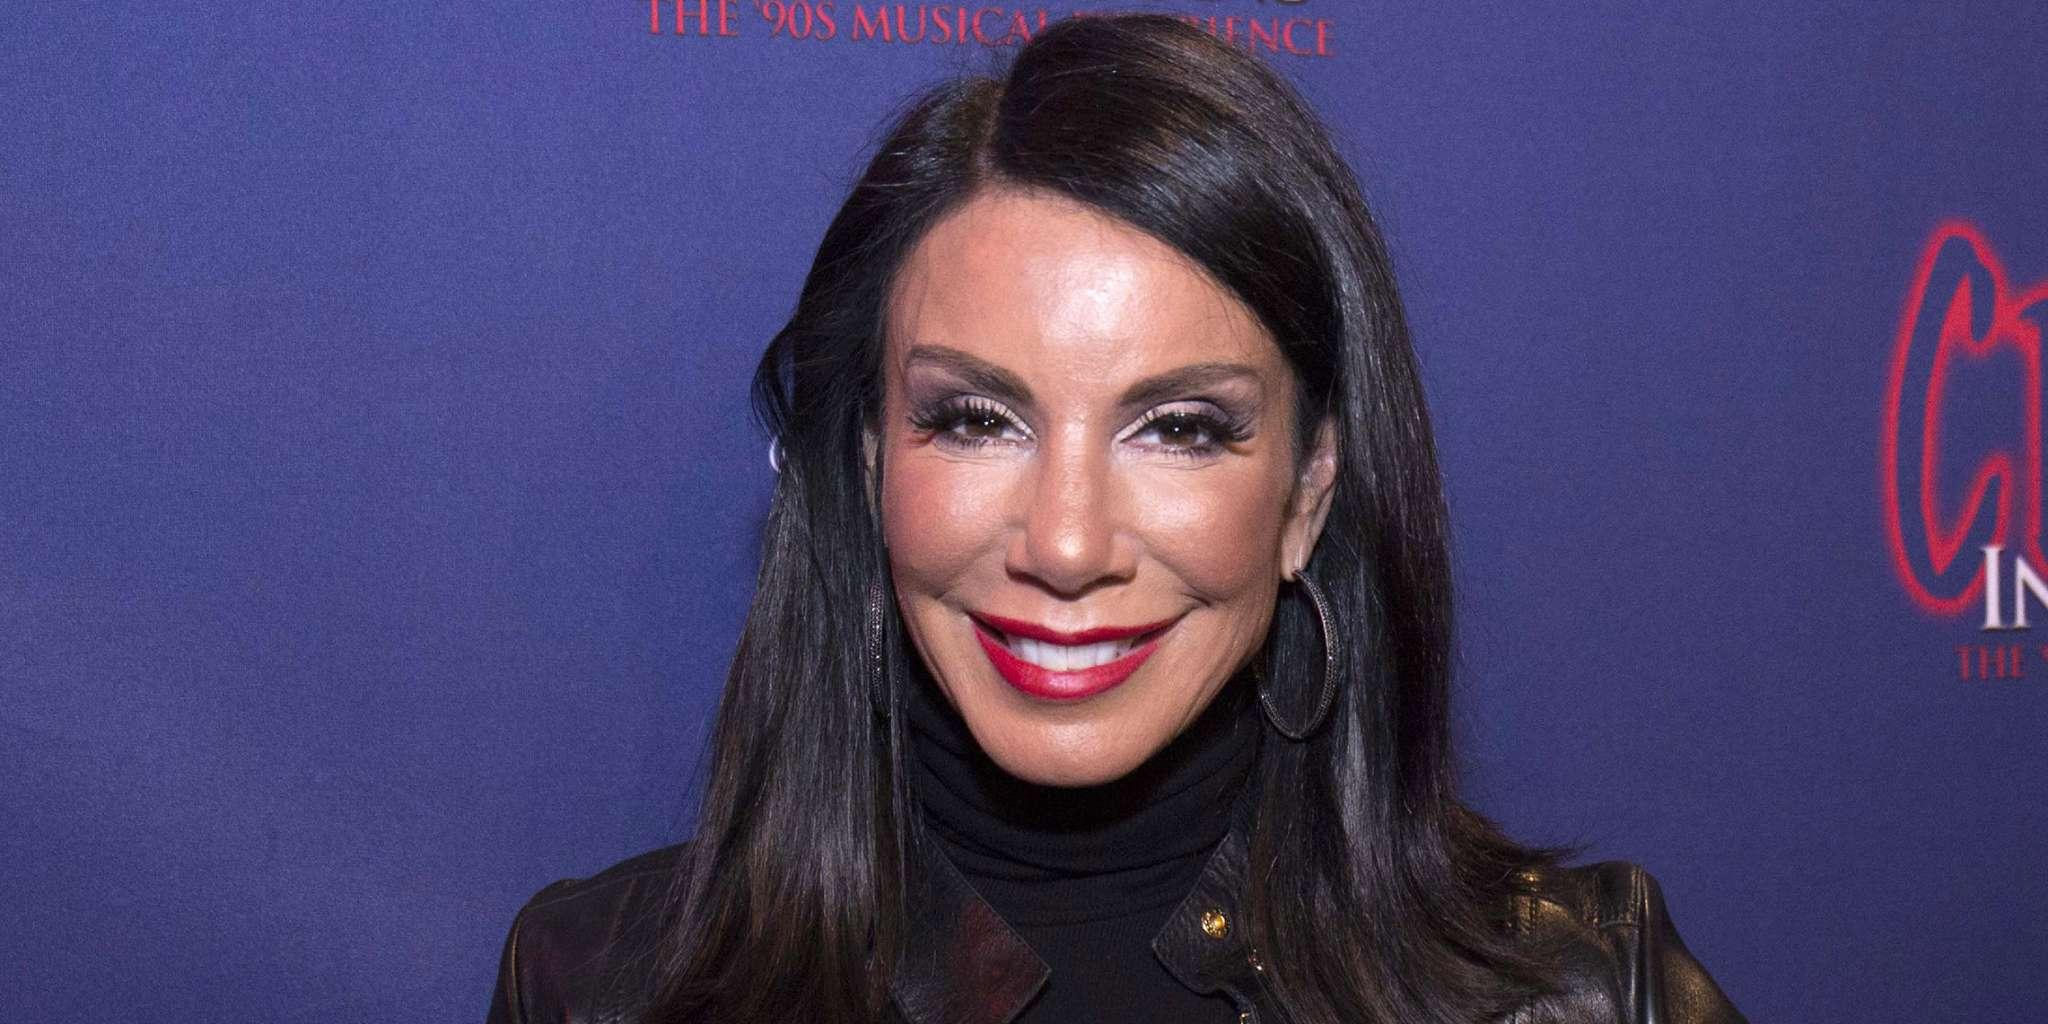 Danielle Staub Mocks Her Love Life While Discussing Her Divorce From Marty Caffrey - I Got Engaged '19 Times!'